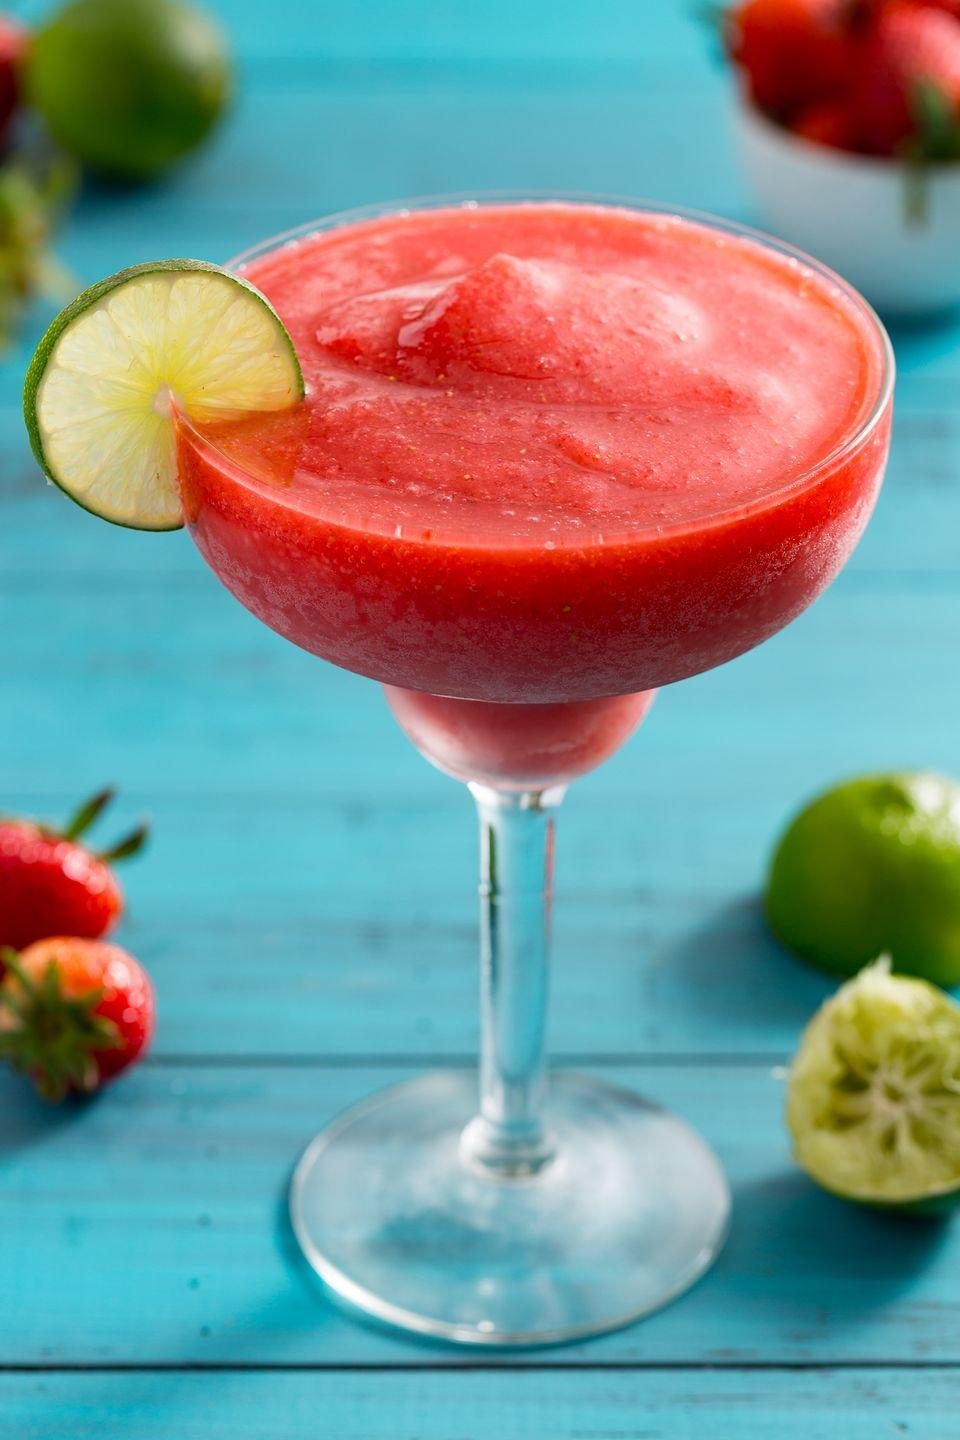 """<p>Sweet strawberries are even better with rum.</p><p>Get the recipe from <a href=""""https://www.delish.com/cooking/recipe-ideas/recipes/a4298/strawberry-daiquiri-frozen-drinks/"""" rel=""""nofollow noopener"""" target=""""_blank"""" data-ylk=""""slk:Delish"""" class=""""link rapid-noclick-resp"""">Delish</a>. </p>"""